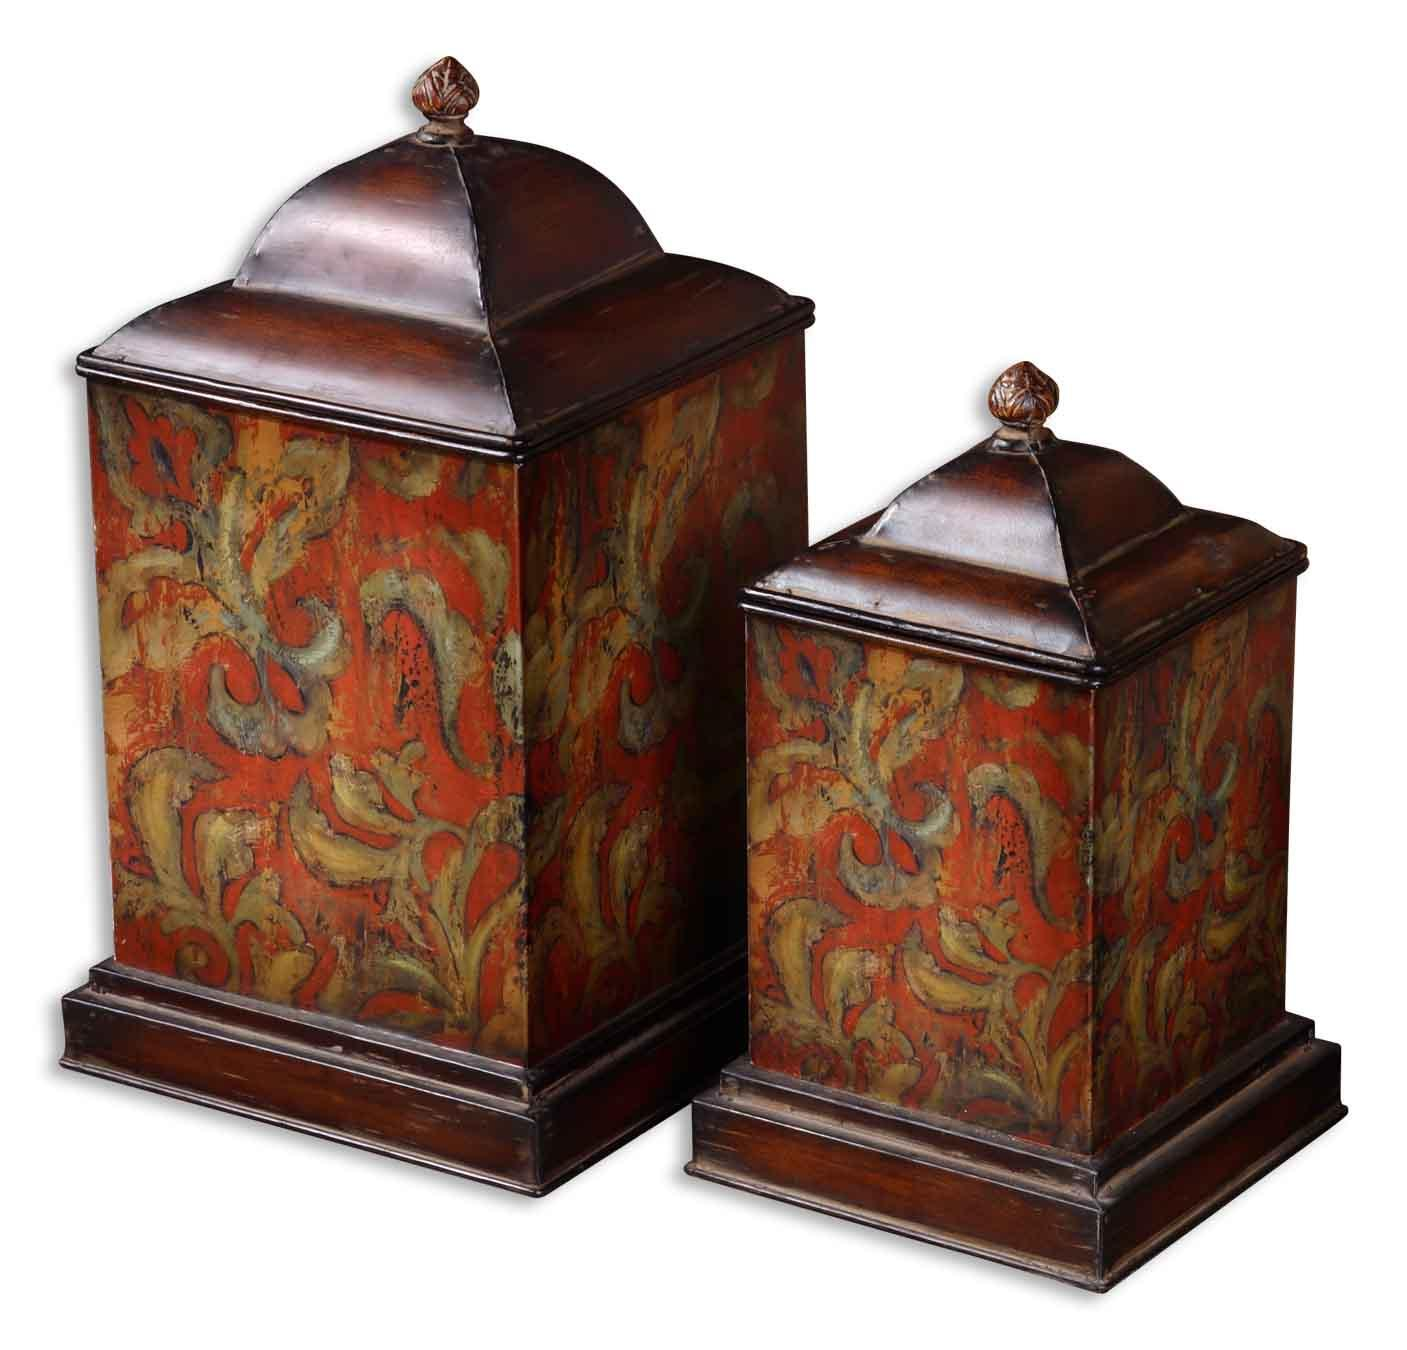 Uttermost Accessories Colorful Flowers Canisters Set of 2 - Item Number: 19166